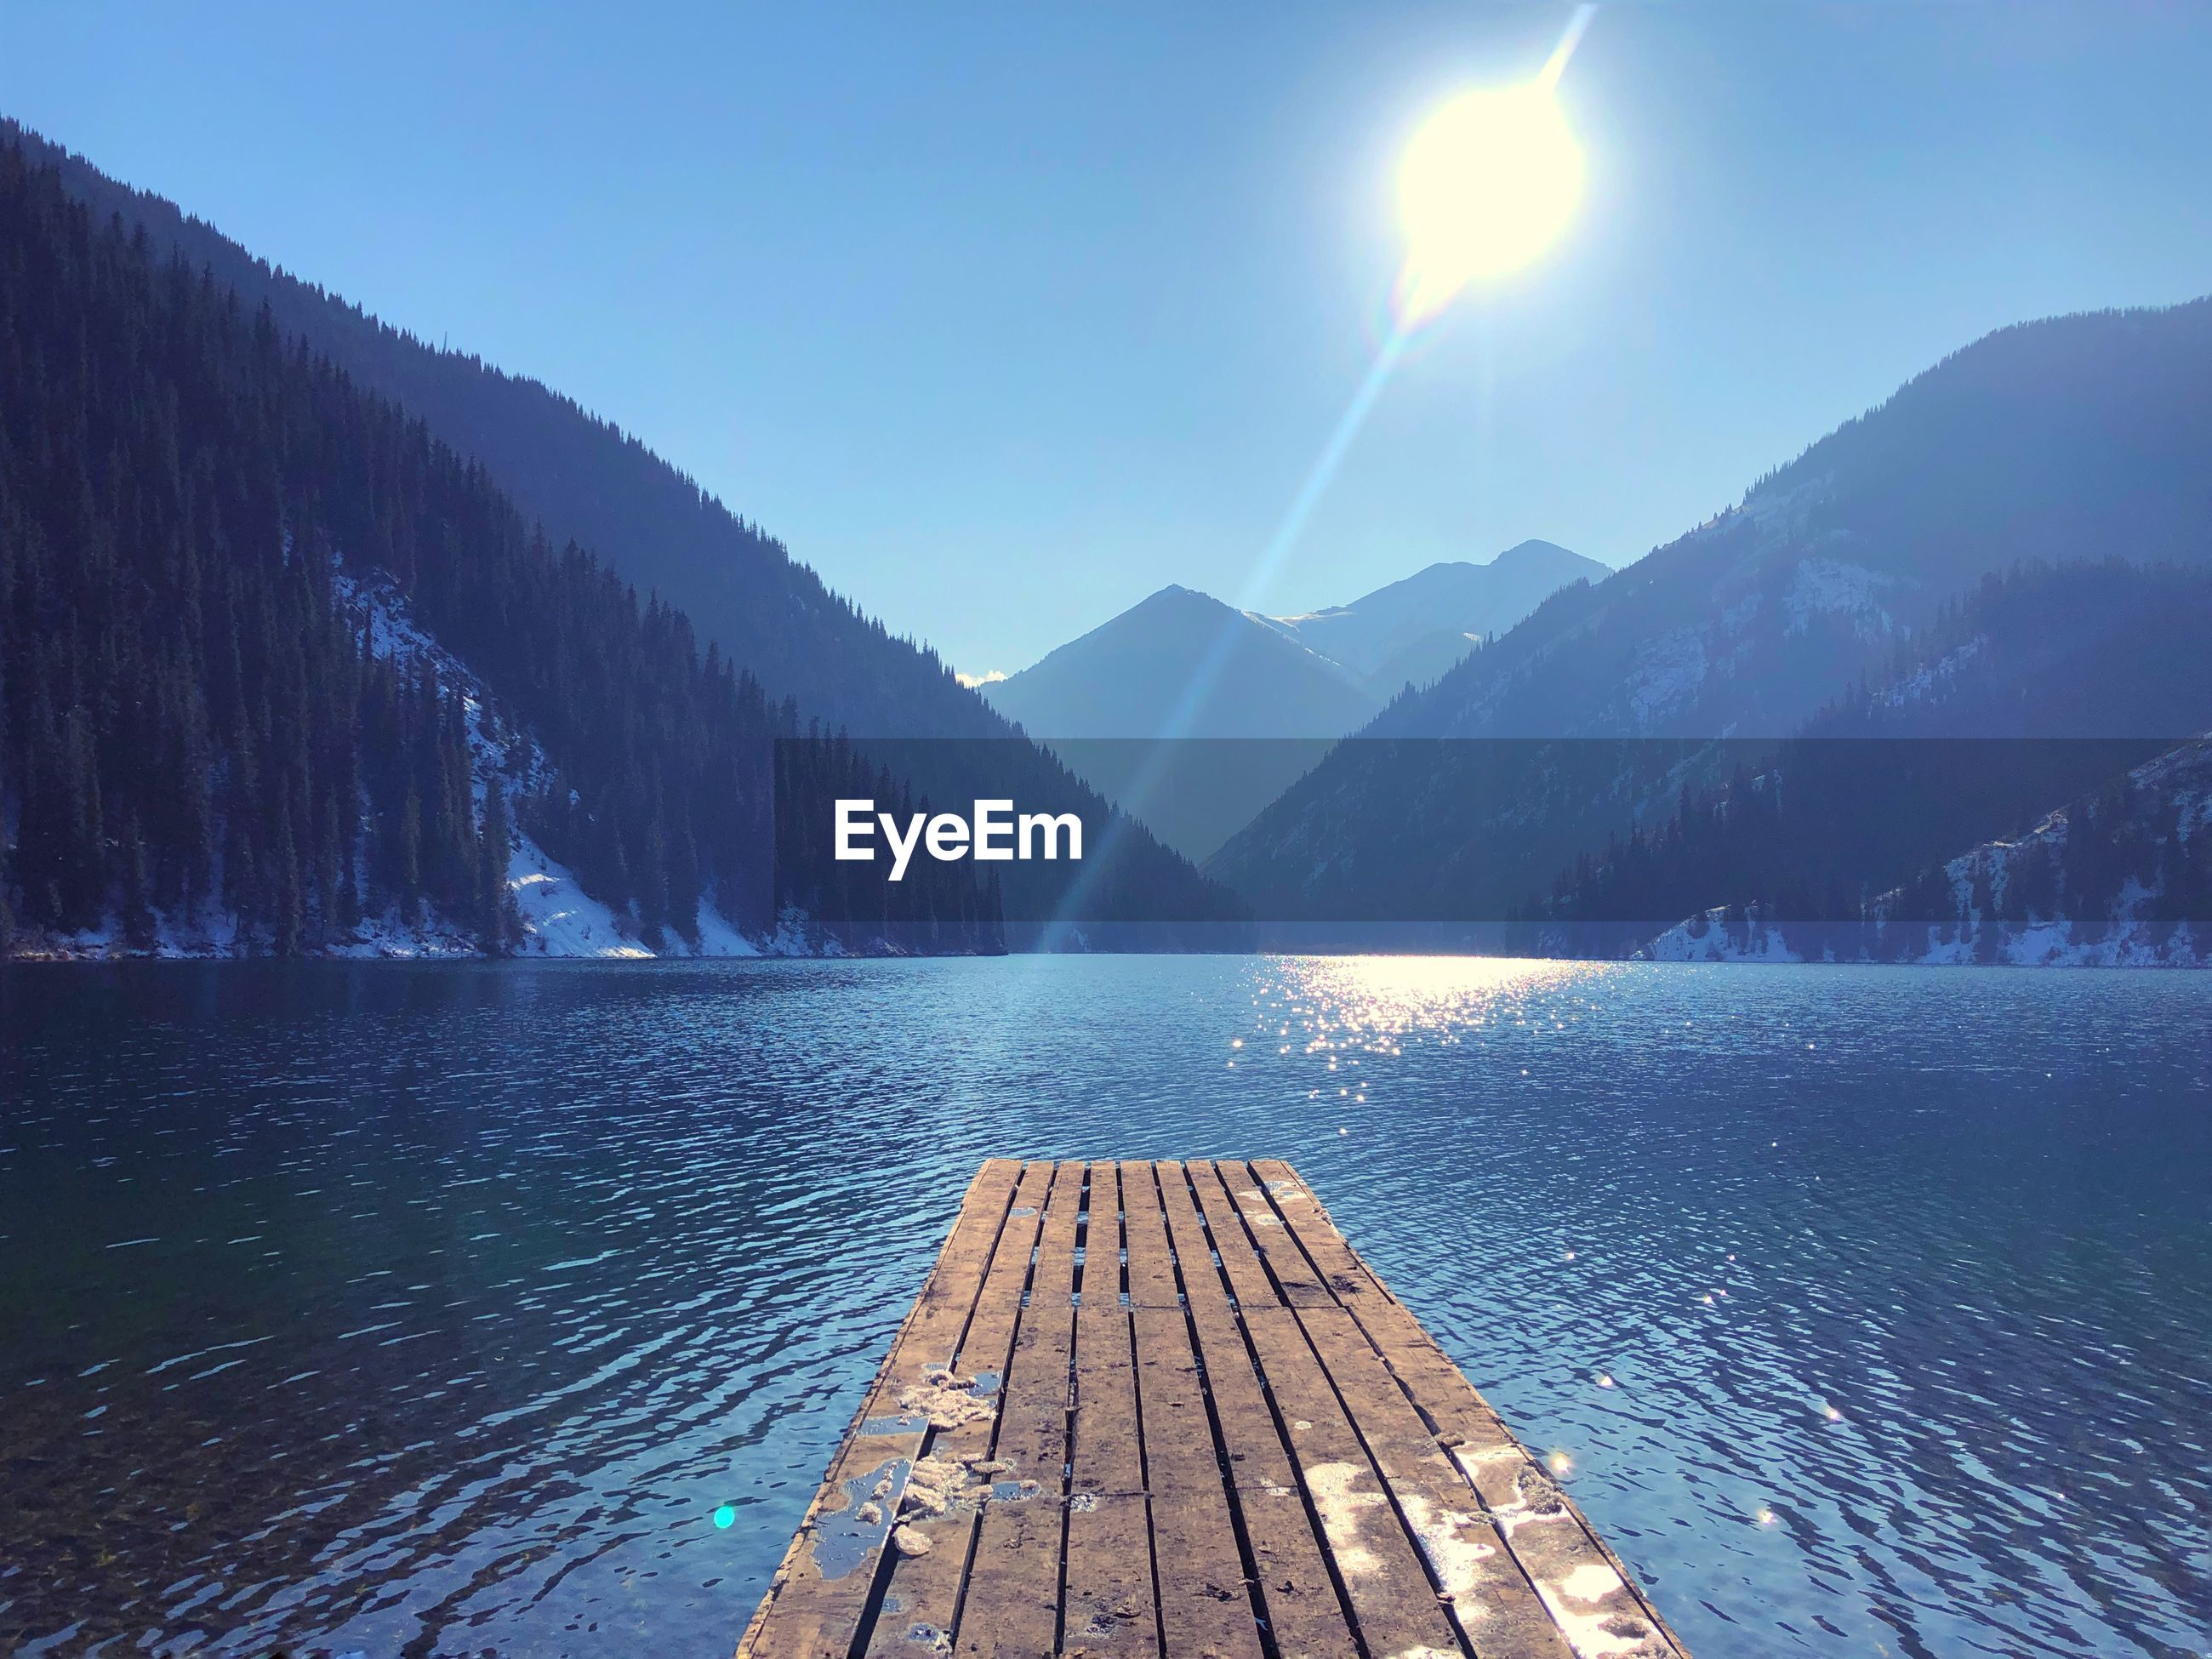 Scenic view of lake by mountains against bright sun